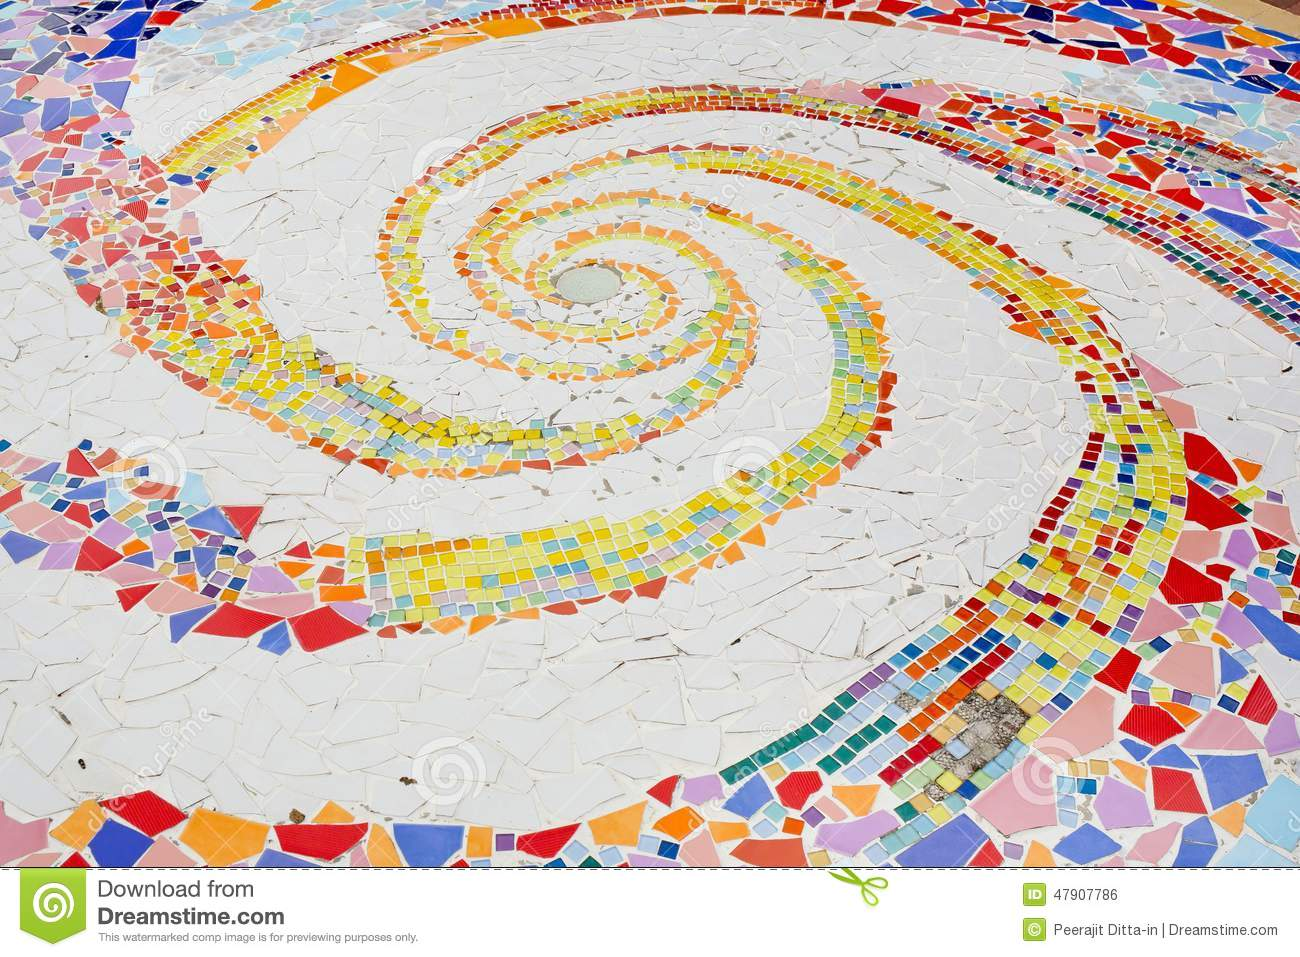 Ceramic Tile Patterns And Colors Stock Photo - Image of azulejos ...